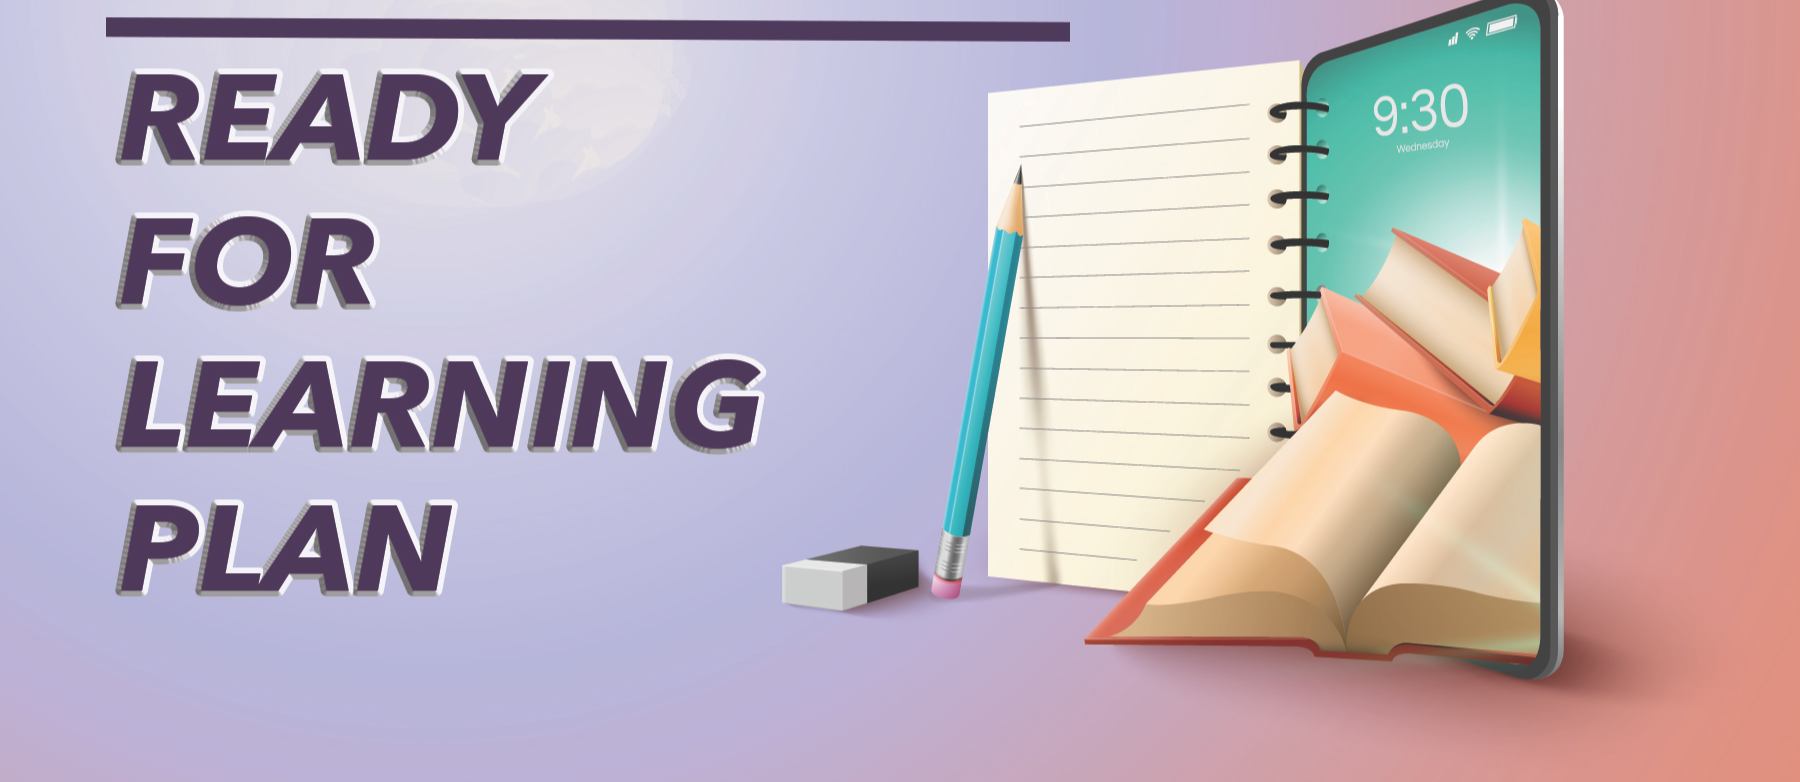 Click the Ready For Learning Plan button below to help your child prepare for school re-entry this fall.